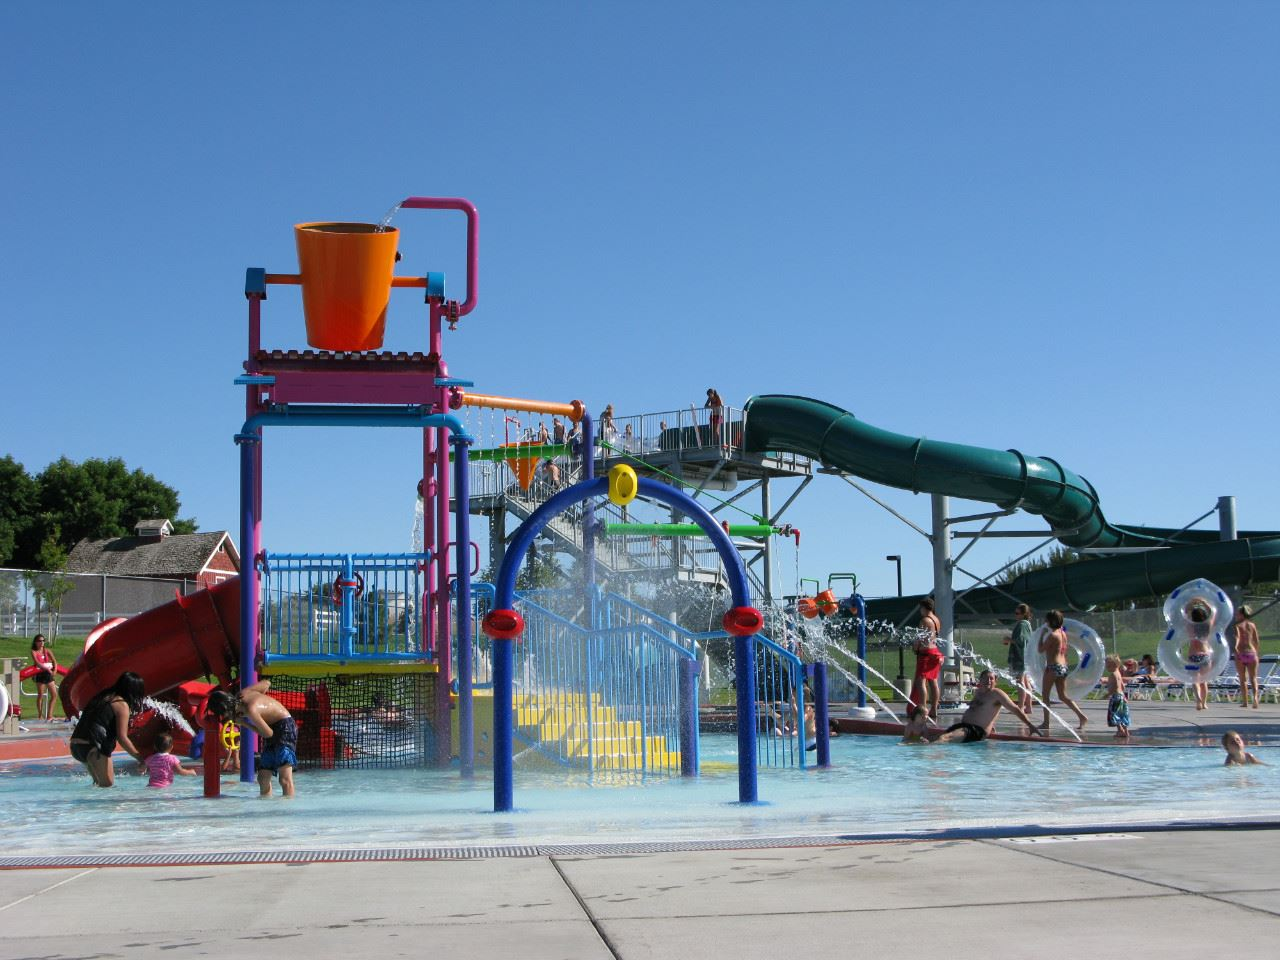 People playing on the Aquatics Center equipment.